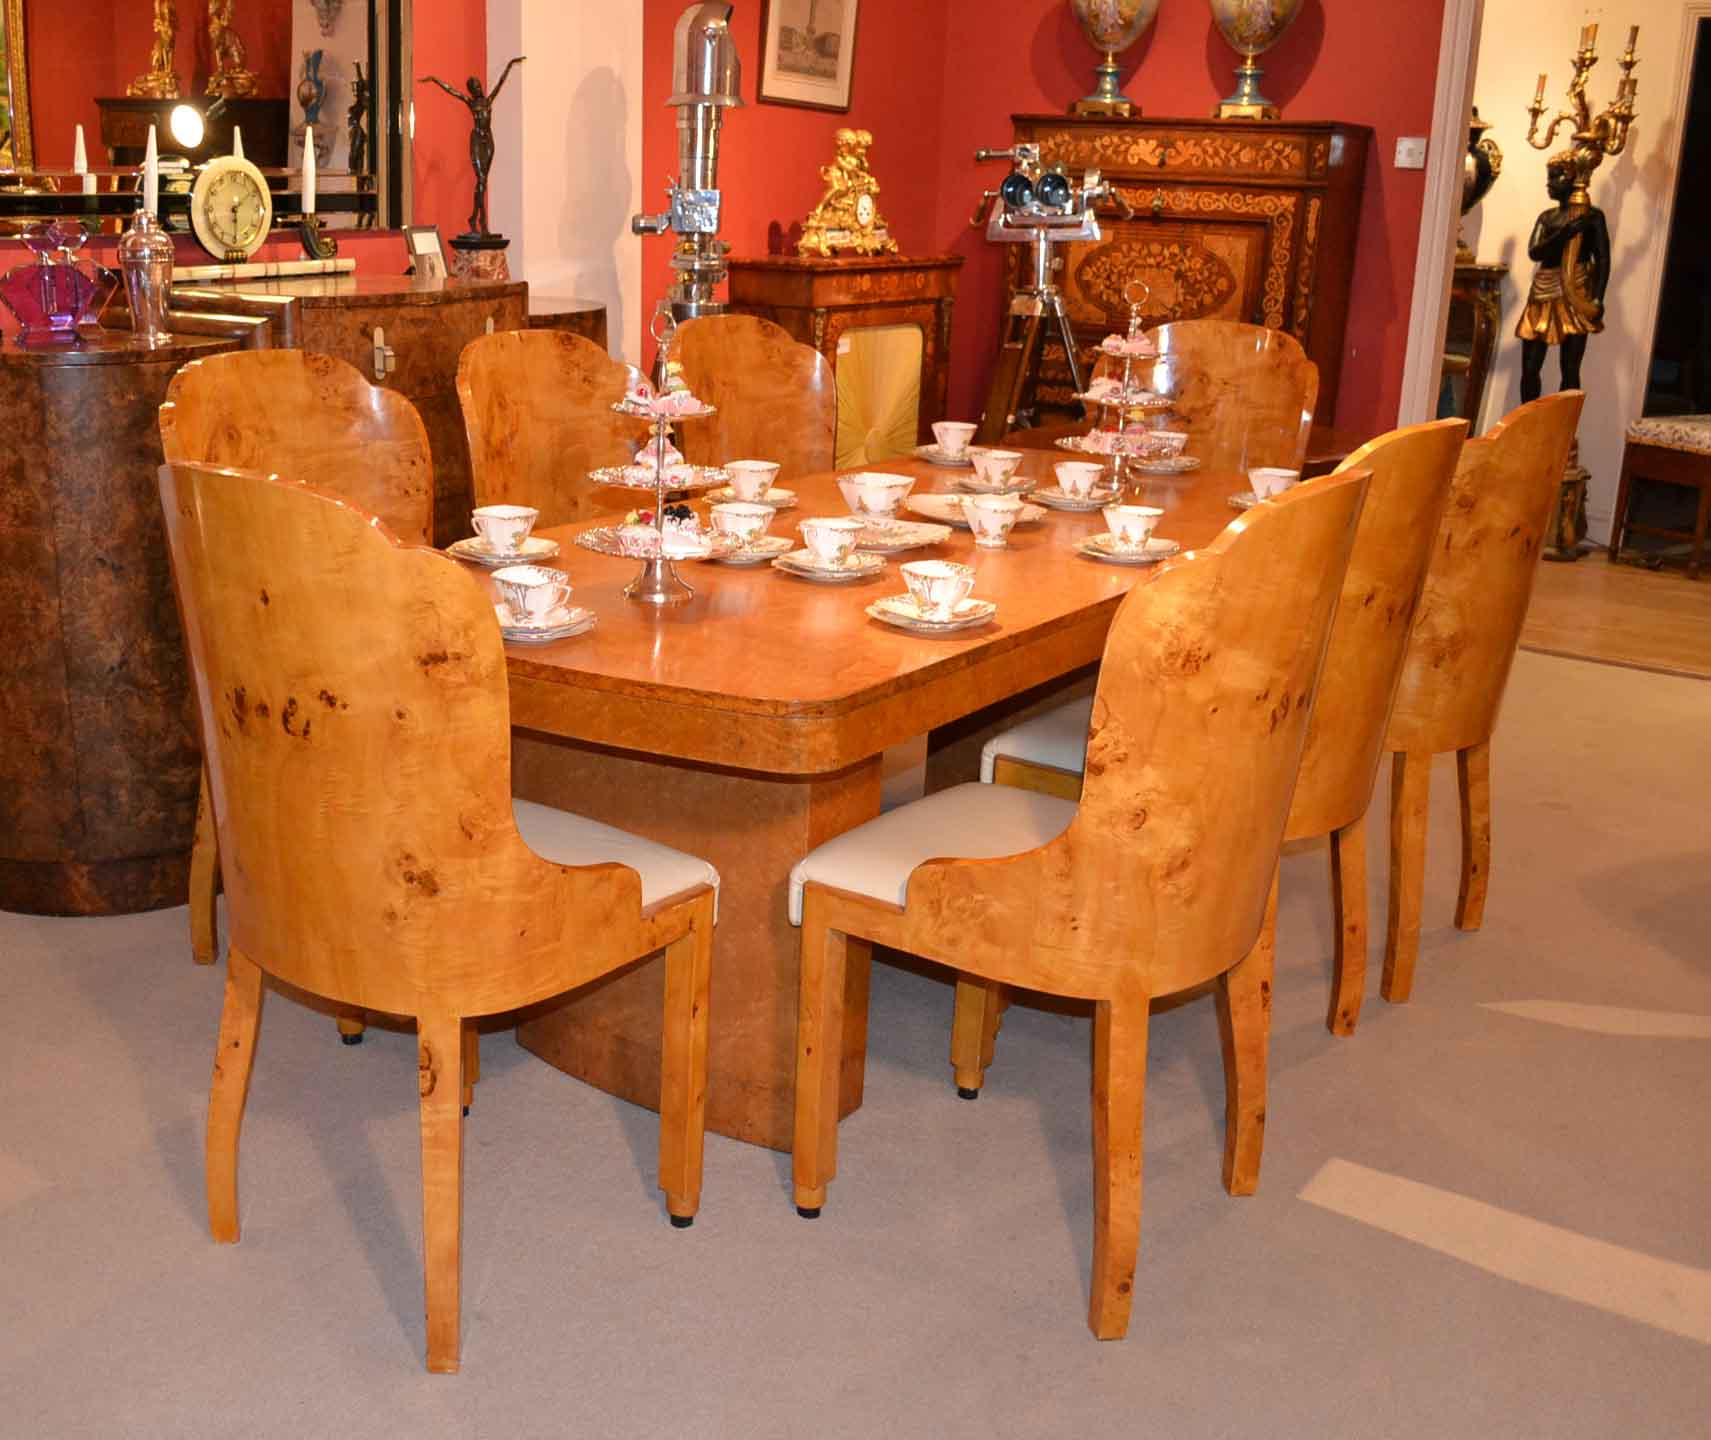 Maple Kitchen Table And Chairs Antique Art Deco Birdseye Maple Dining Table 8 Chairs